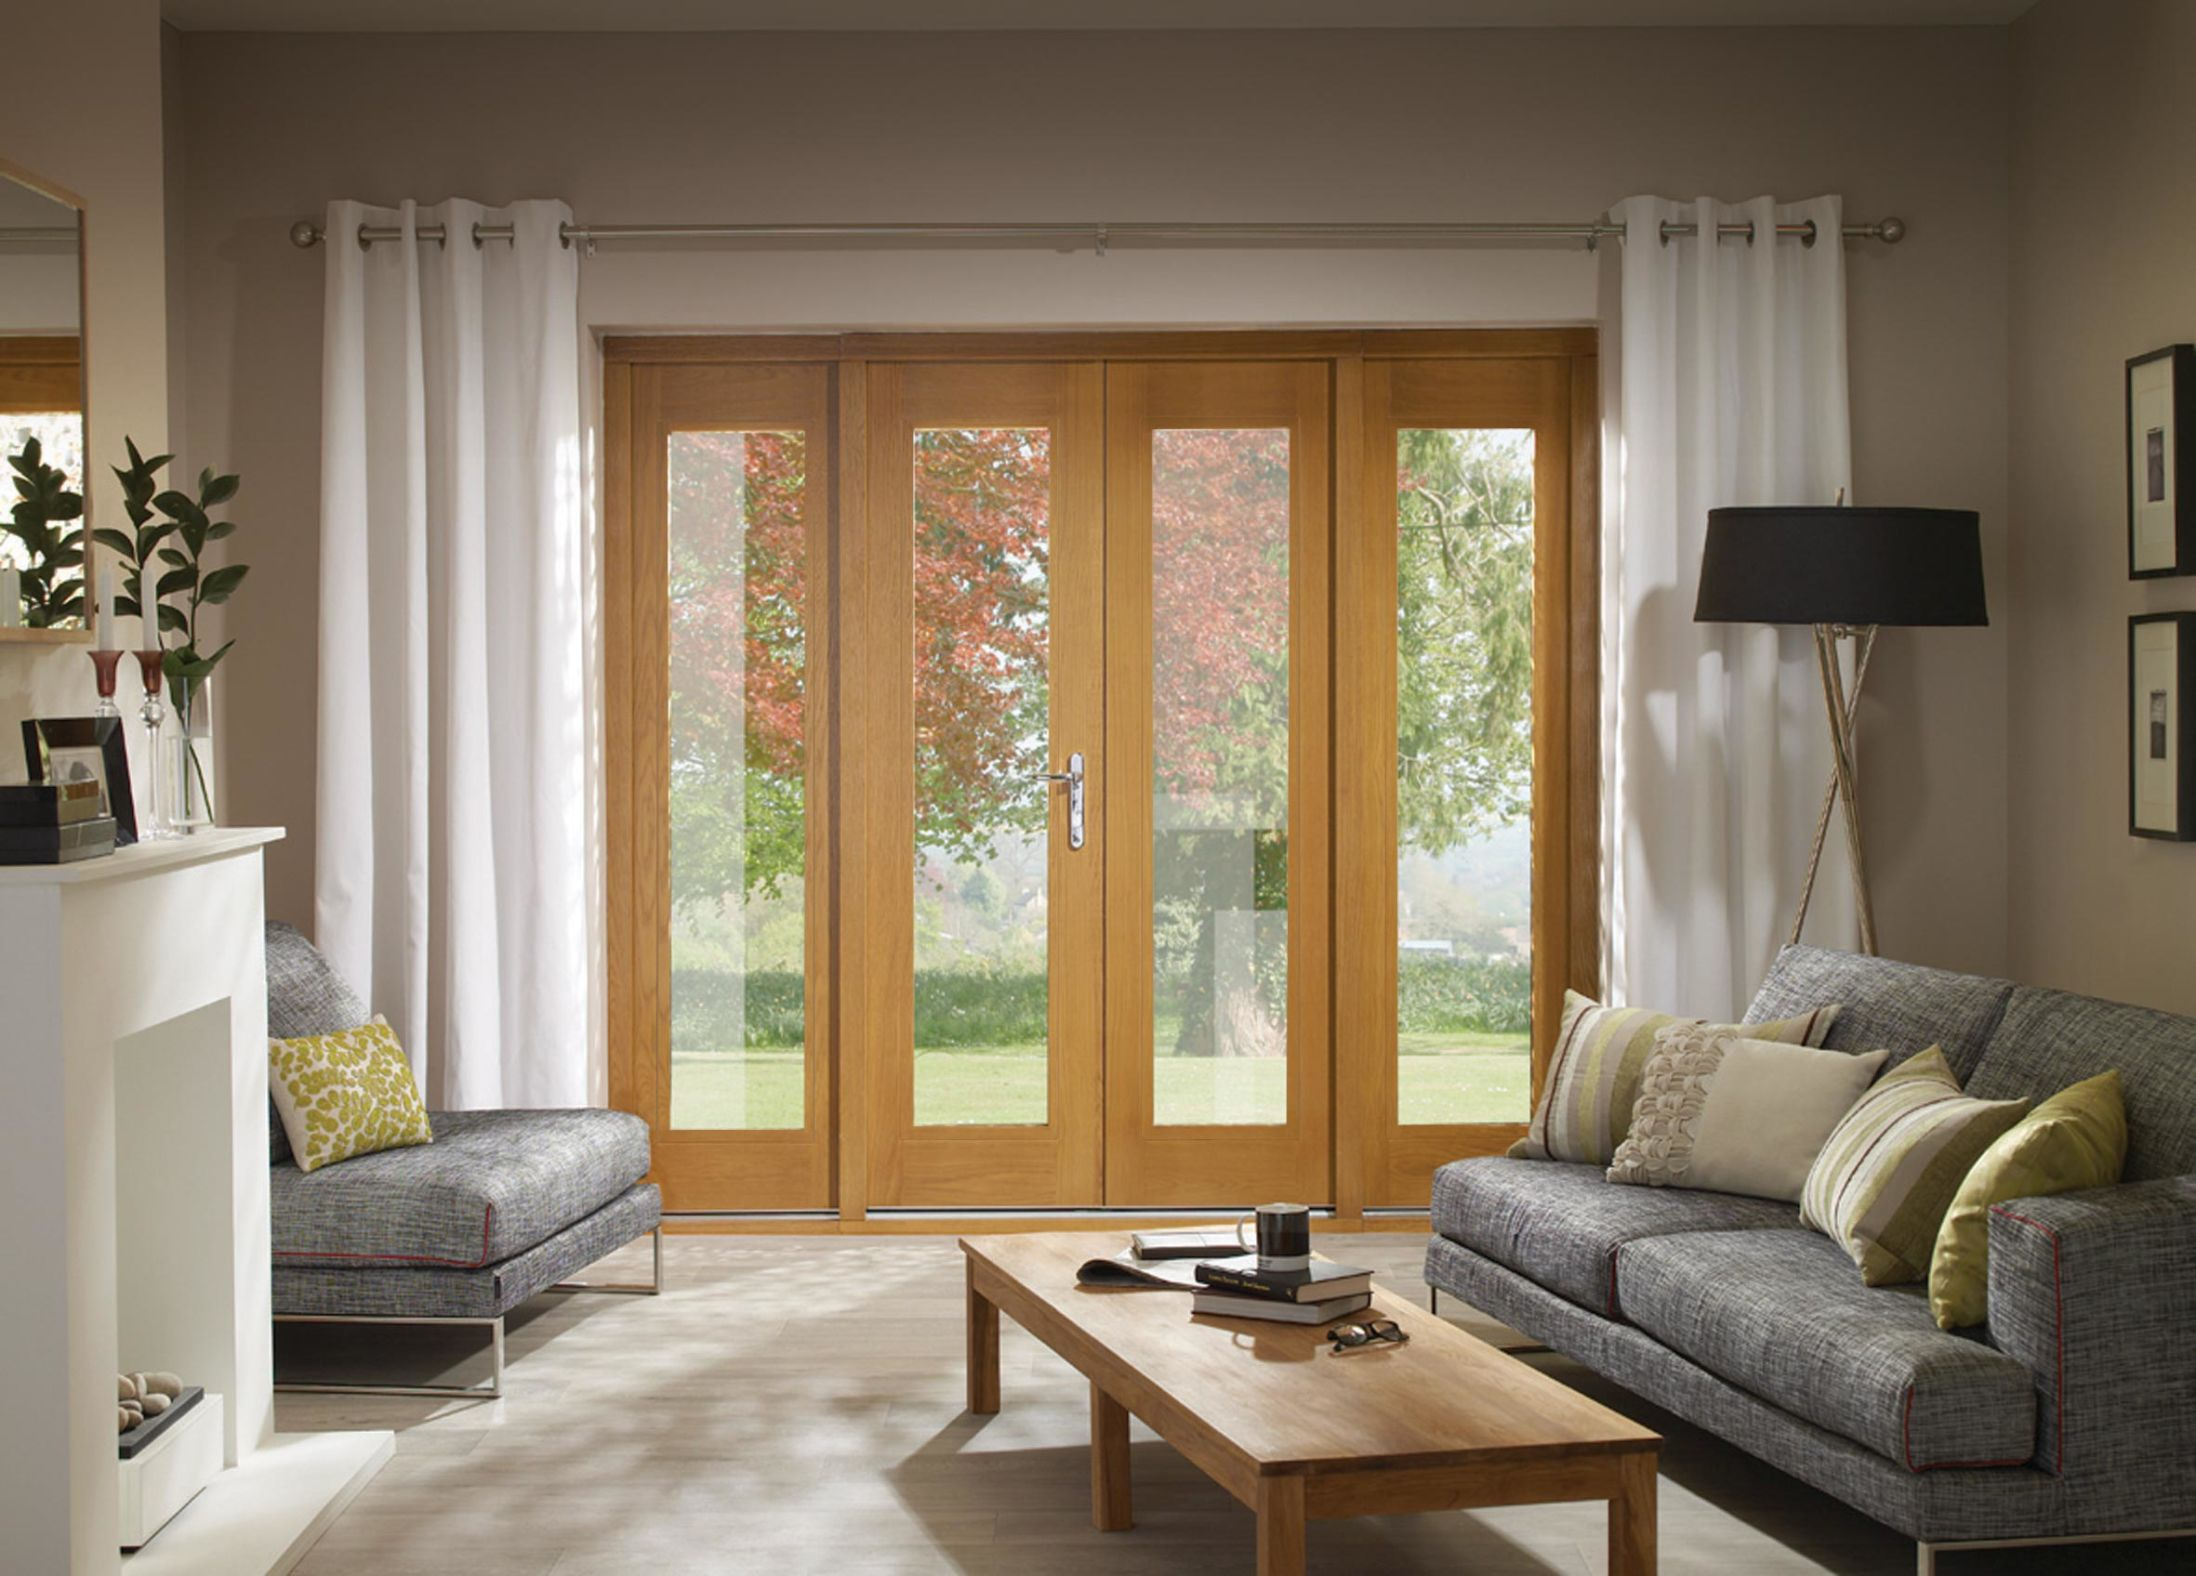 XL La Porte Patio Folding Doors